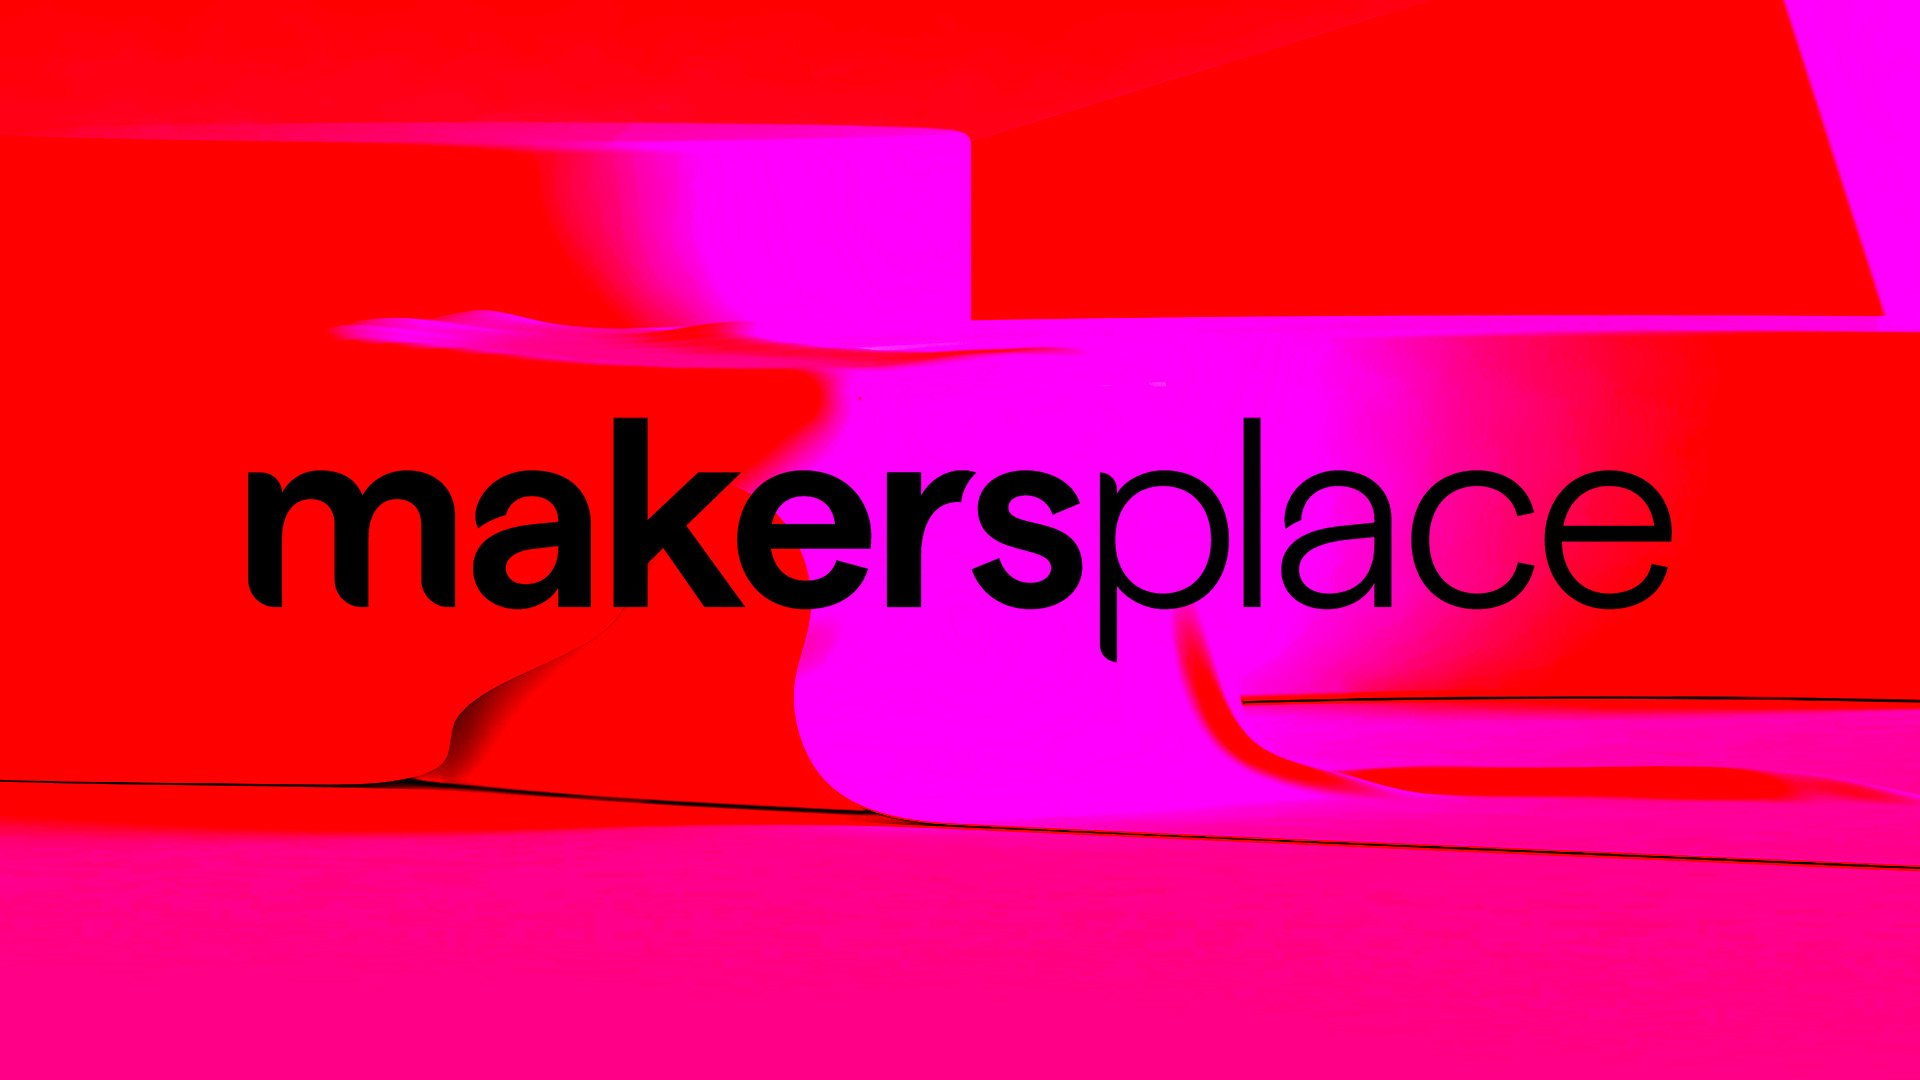 NFT marketplace MakersPlace secures $30 million in Series A round